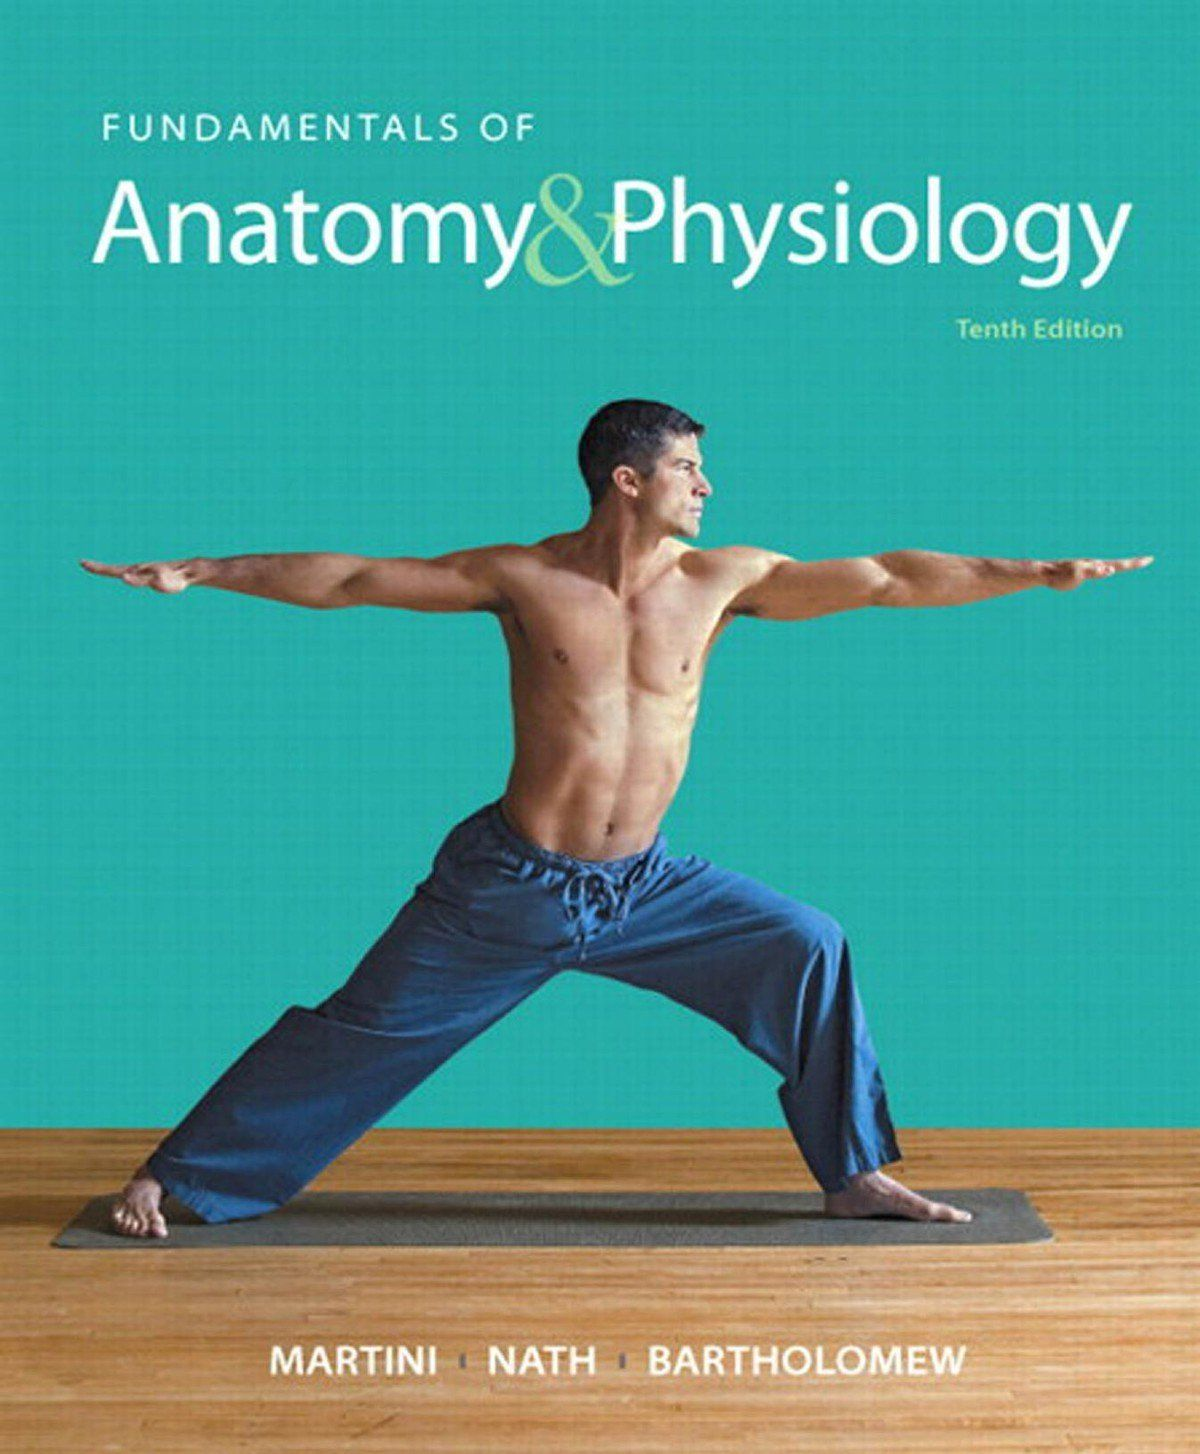 Lujoso Anatomy And Physiology Textbook Online Pdf Modelo - Anatomía ...